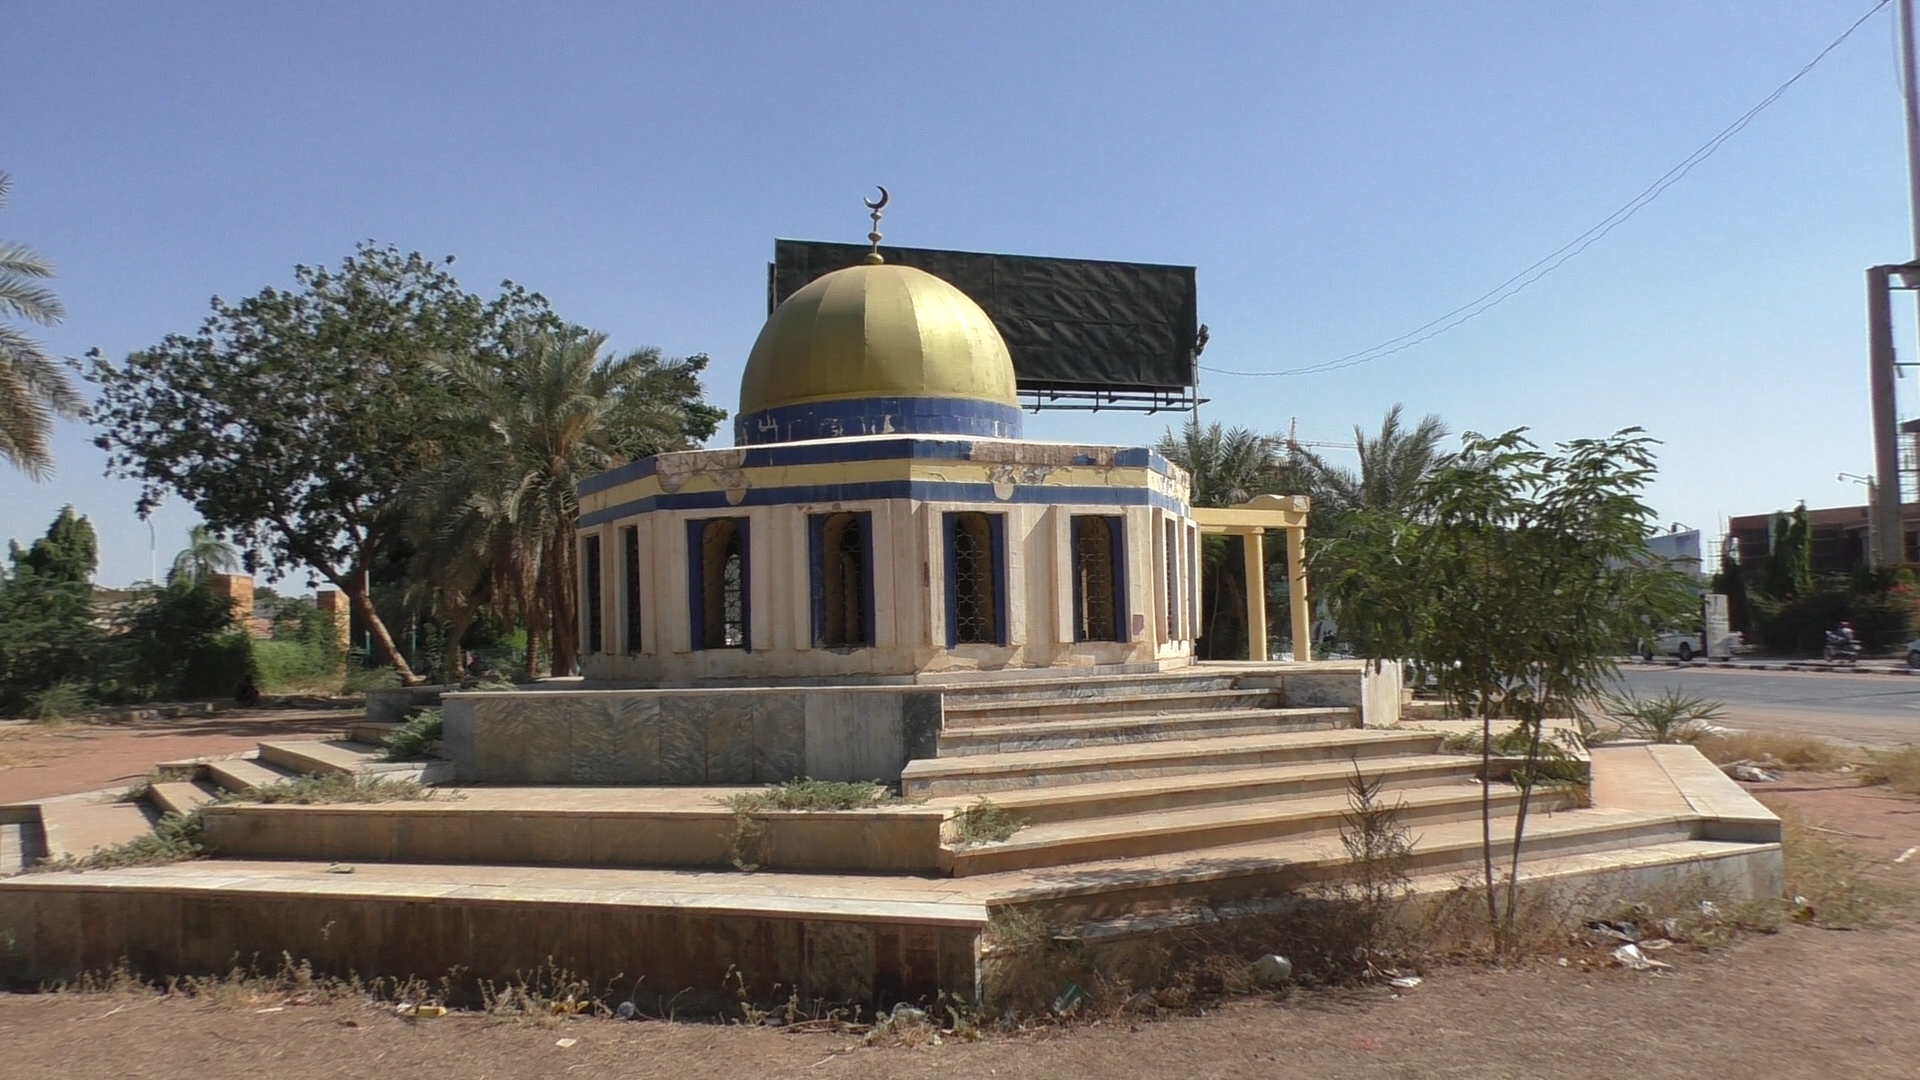 A model of the Dome of the Rock in Khartoum, Sudan, November 2020. (Ziv Genesove)